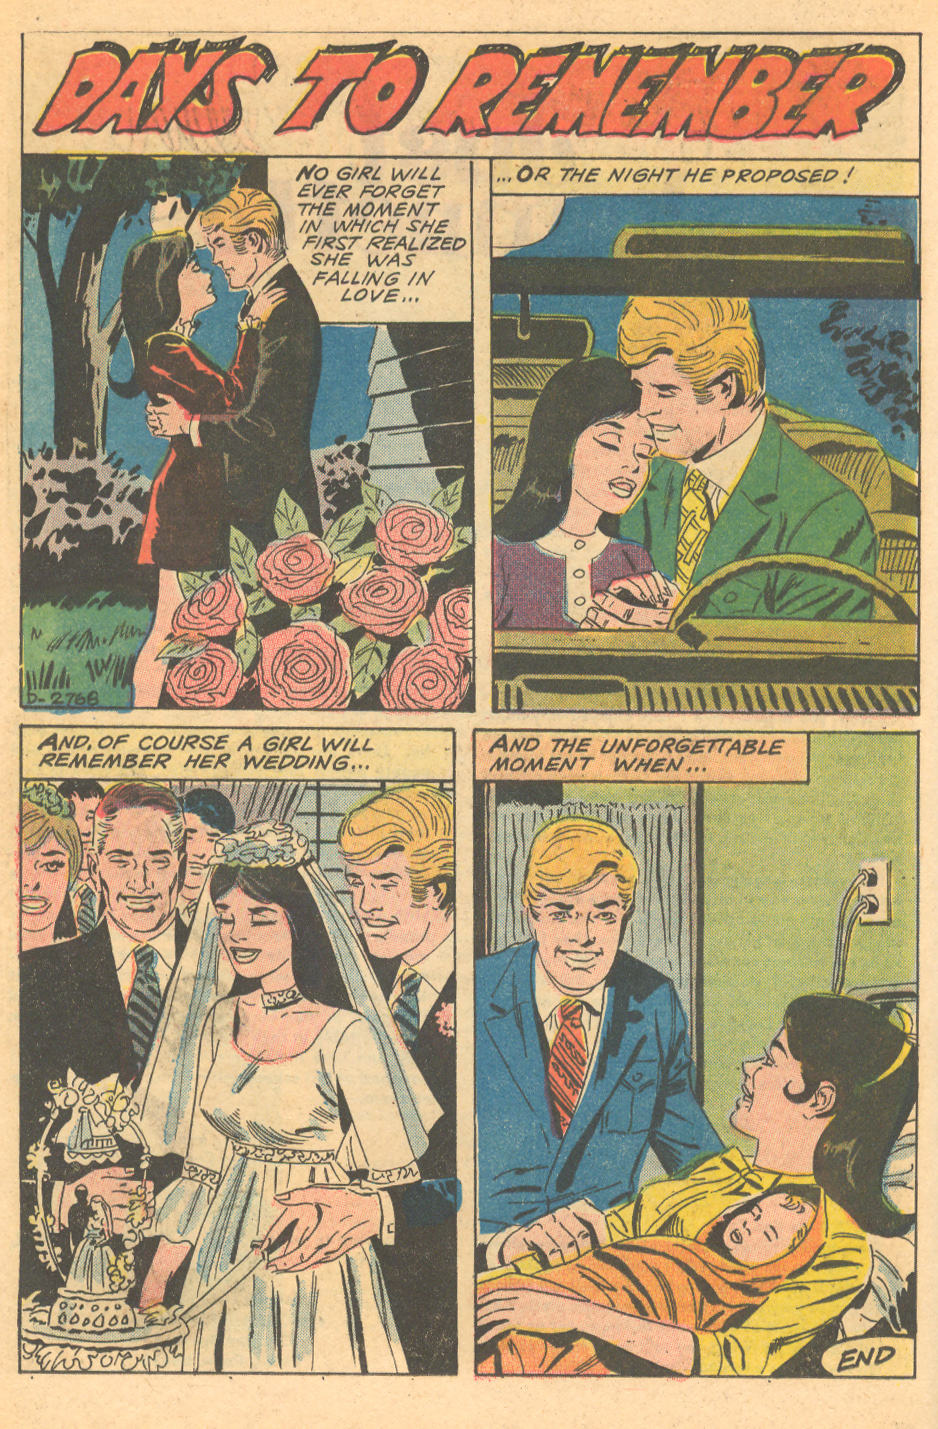 """Days to Remember""  Just Married  #93 (March 1973) Pencils by Charles Nicholas, Inks by Vincent Alascia"